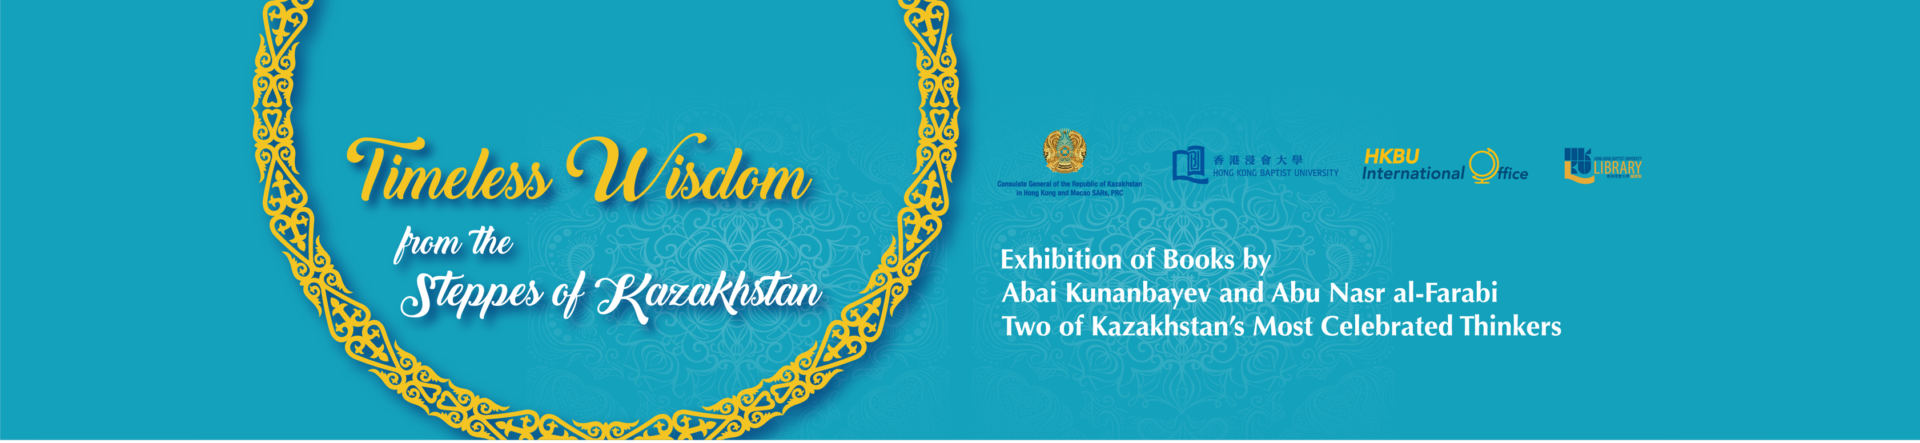 Library exhibition Timeless Wisdom from the Steppes of Kazakhstan